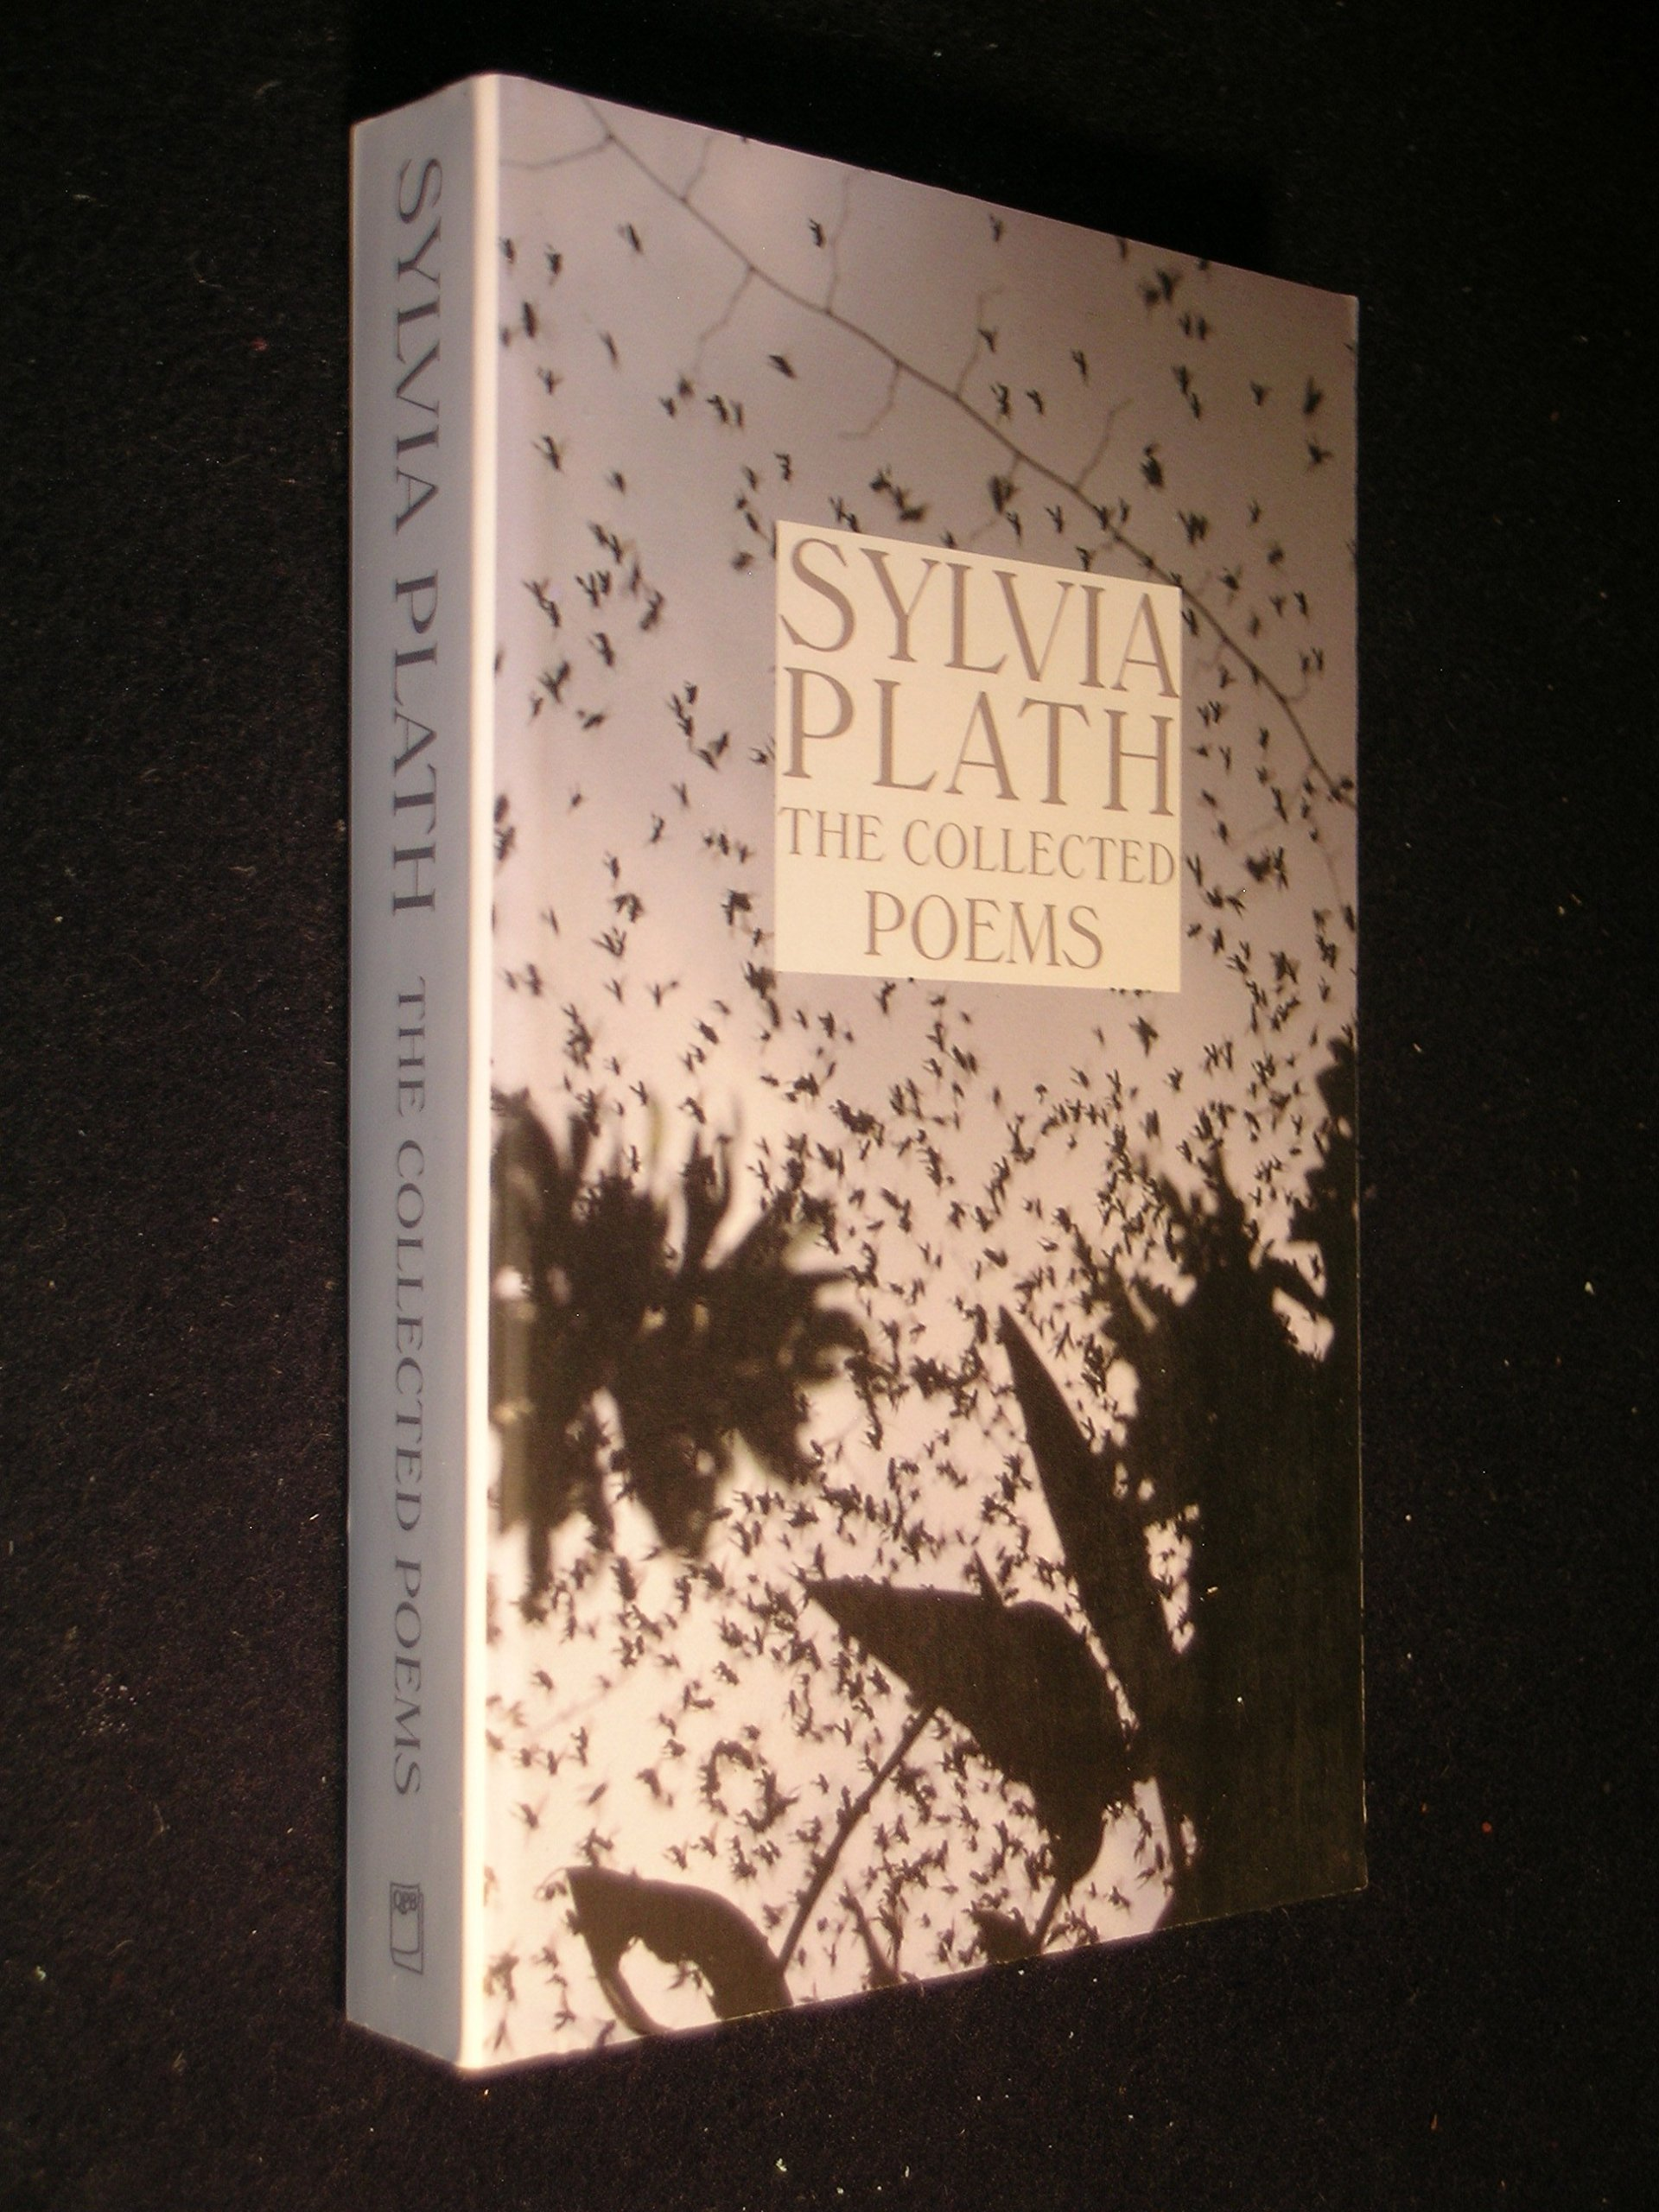 Sylvia Plath: The Collected Poems, Sylvia Plath